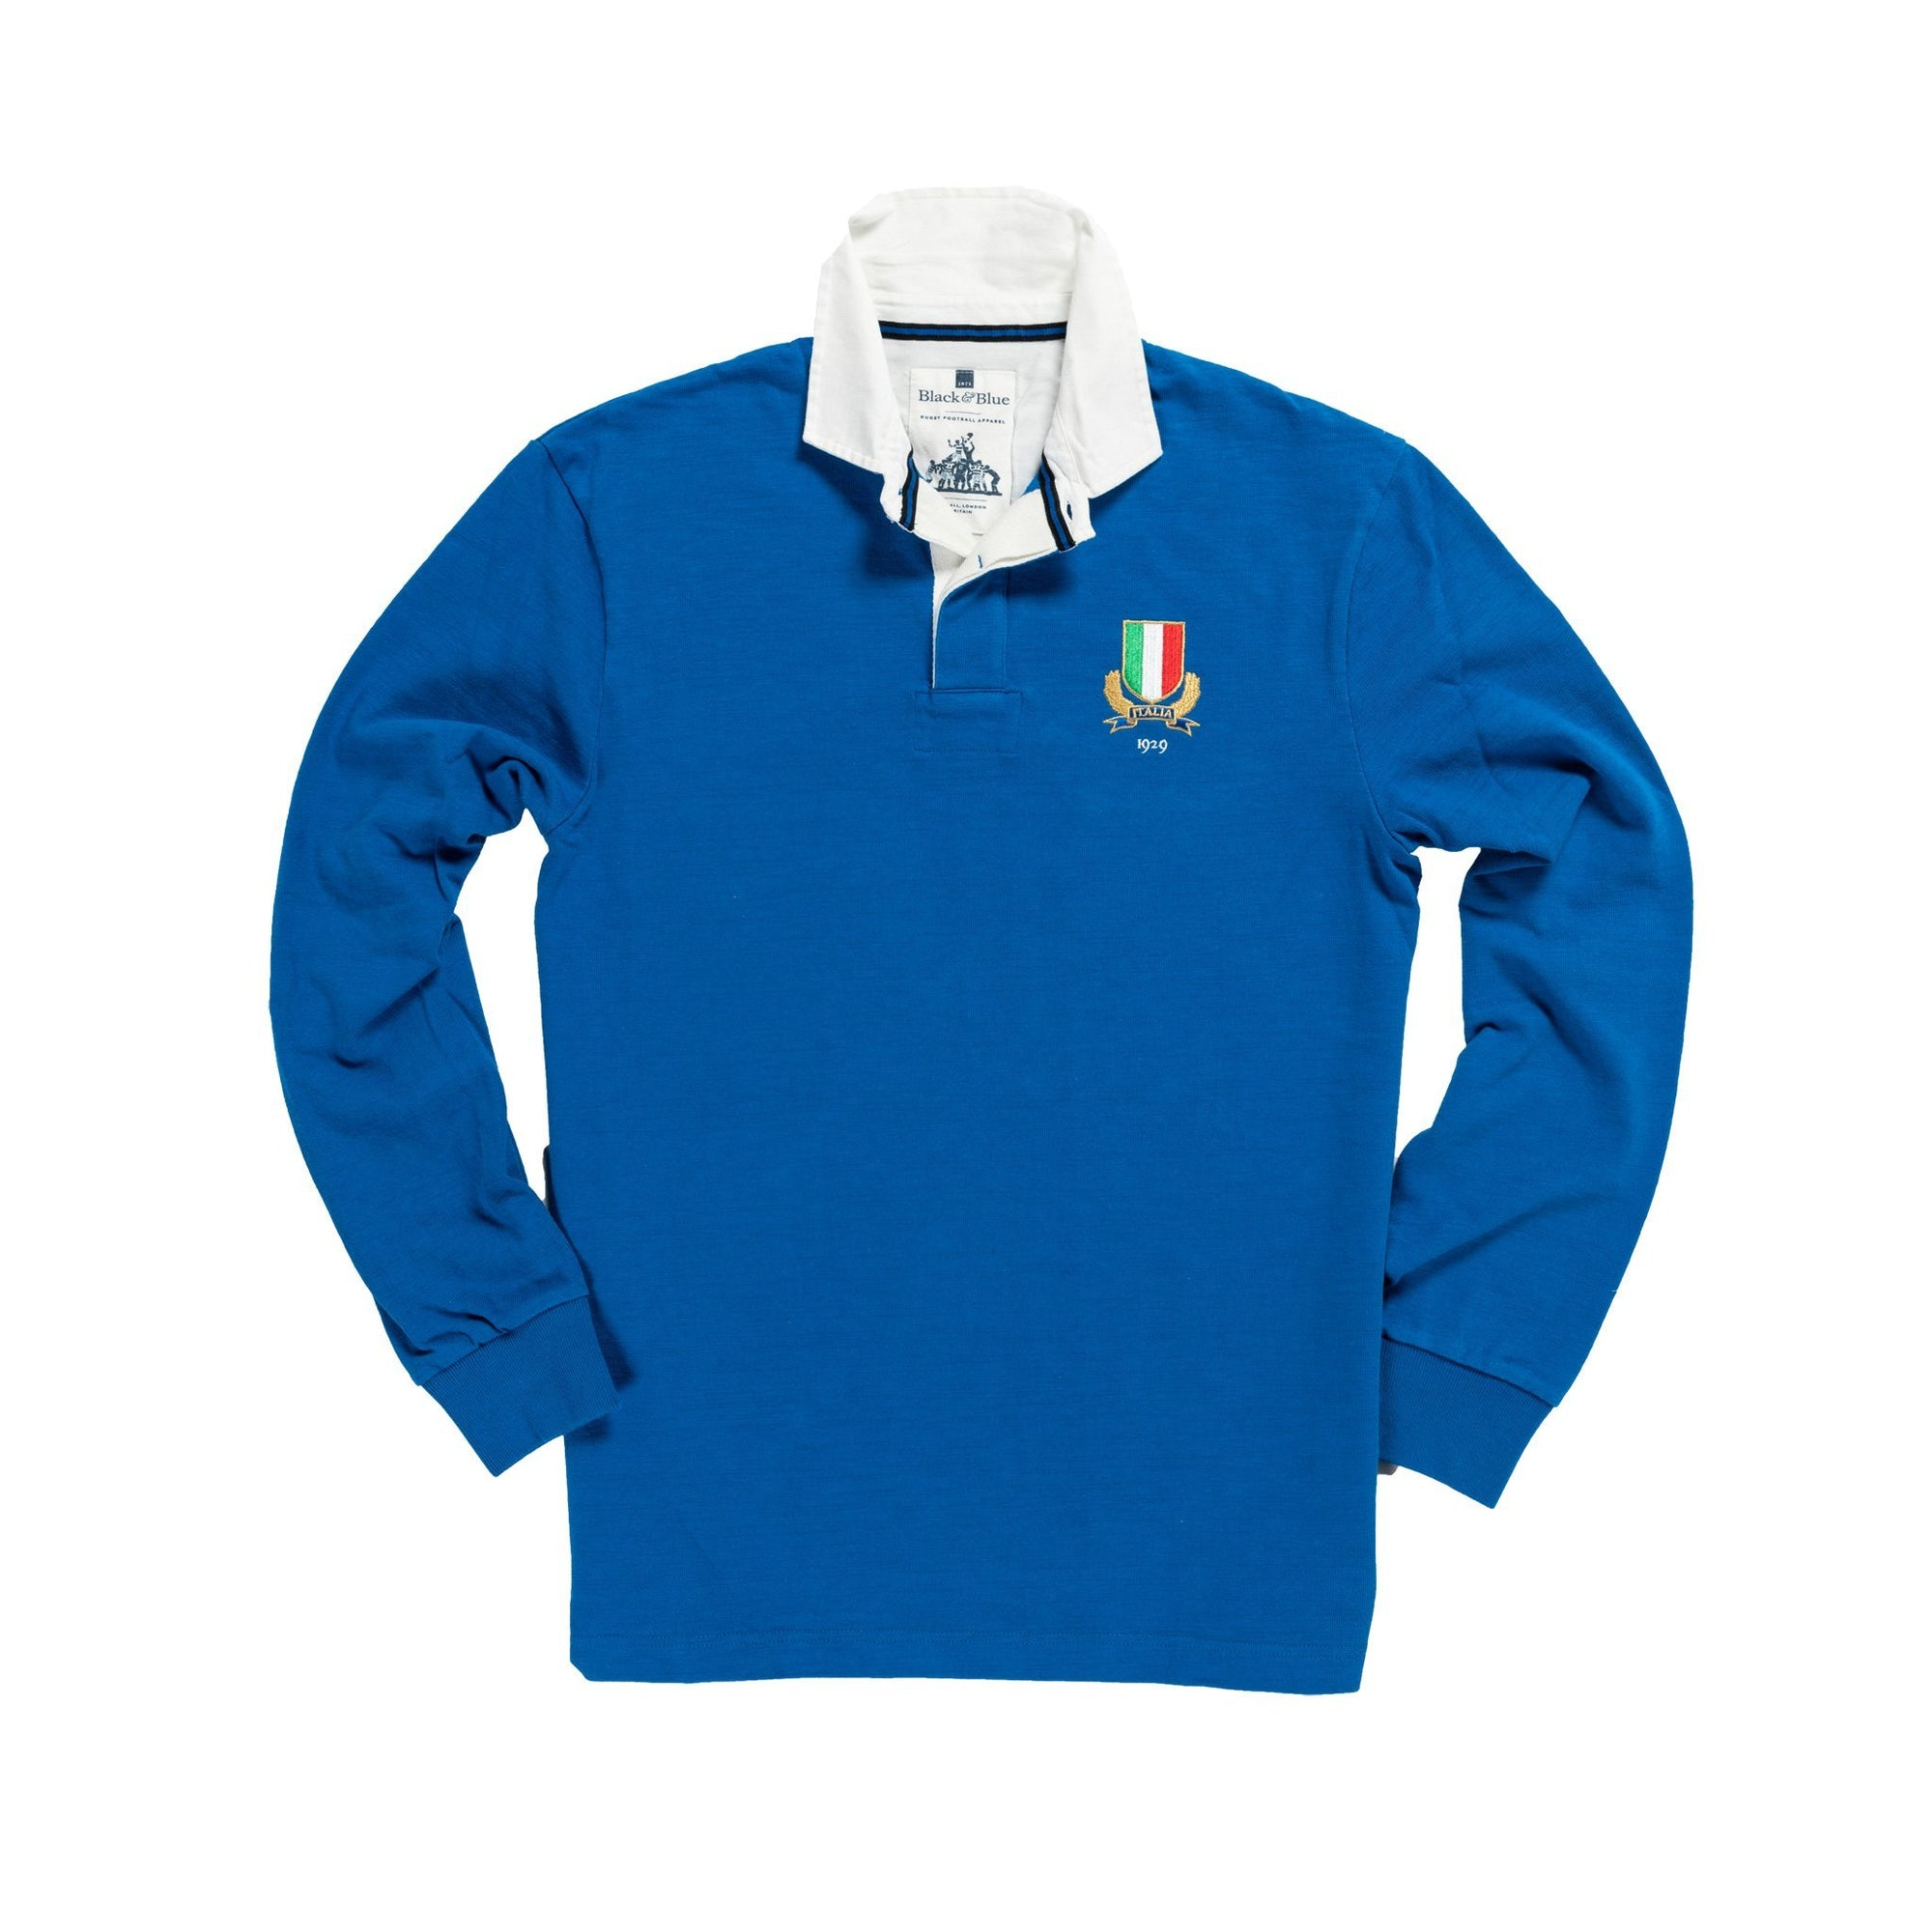 Black & Blue 1871 | Italy 1929 Rugby Shirt | Heavy Cotton Rugby Shirt